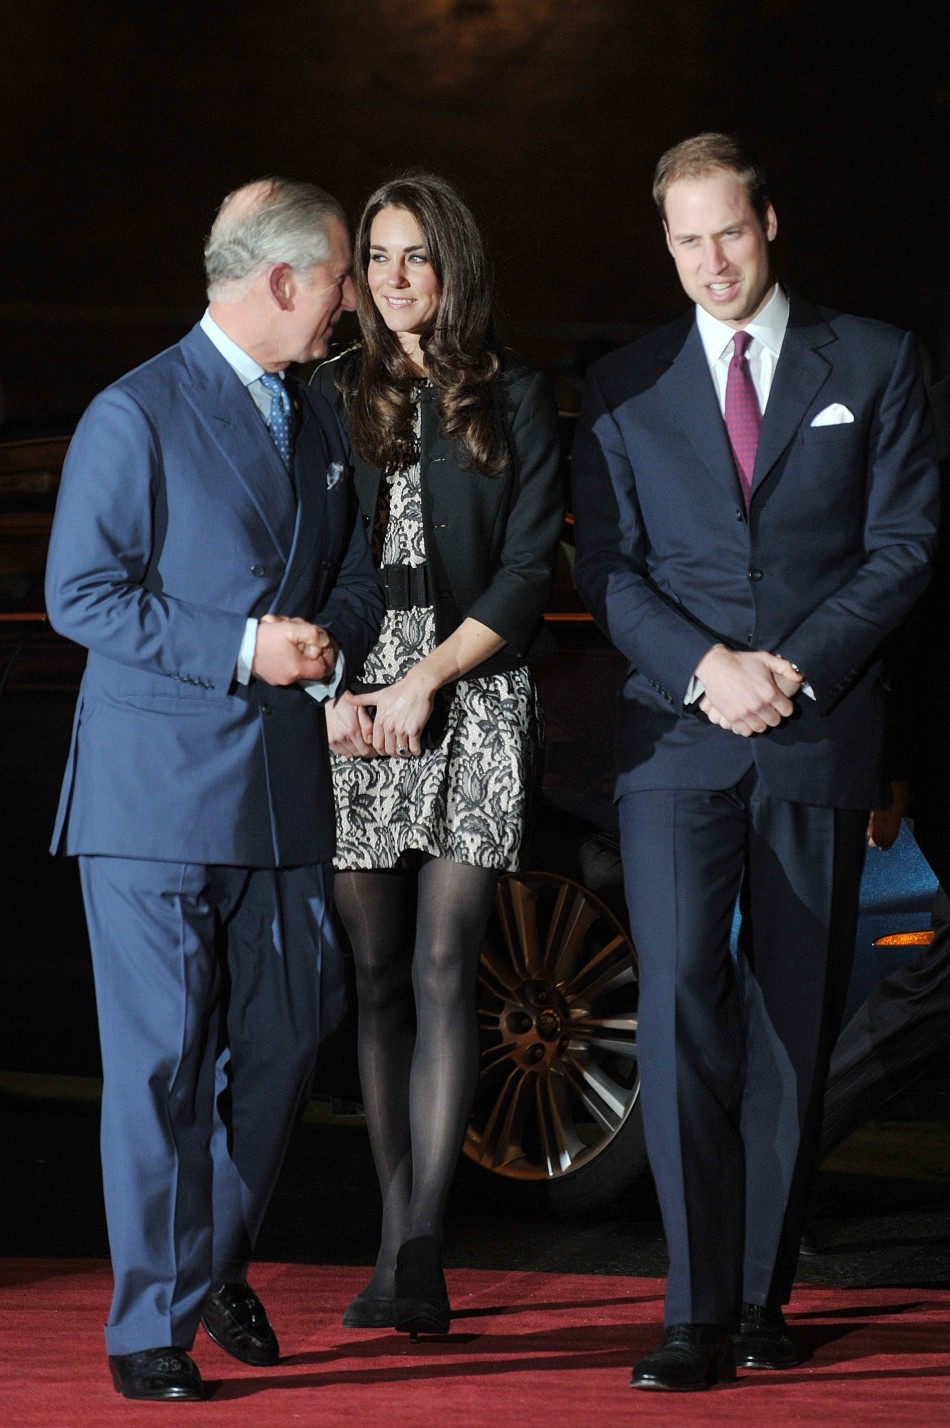 Britains Prince Charles, Prince William and Kate Middleton, Duchess of Cambridge